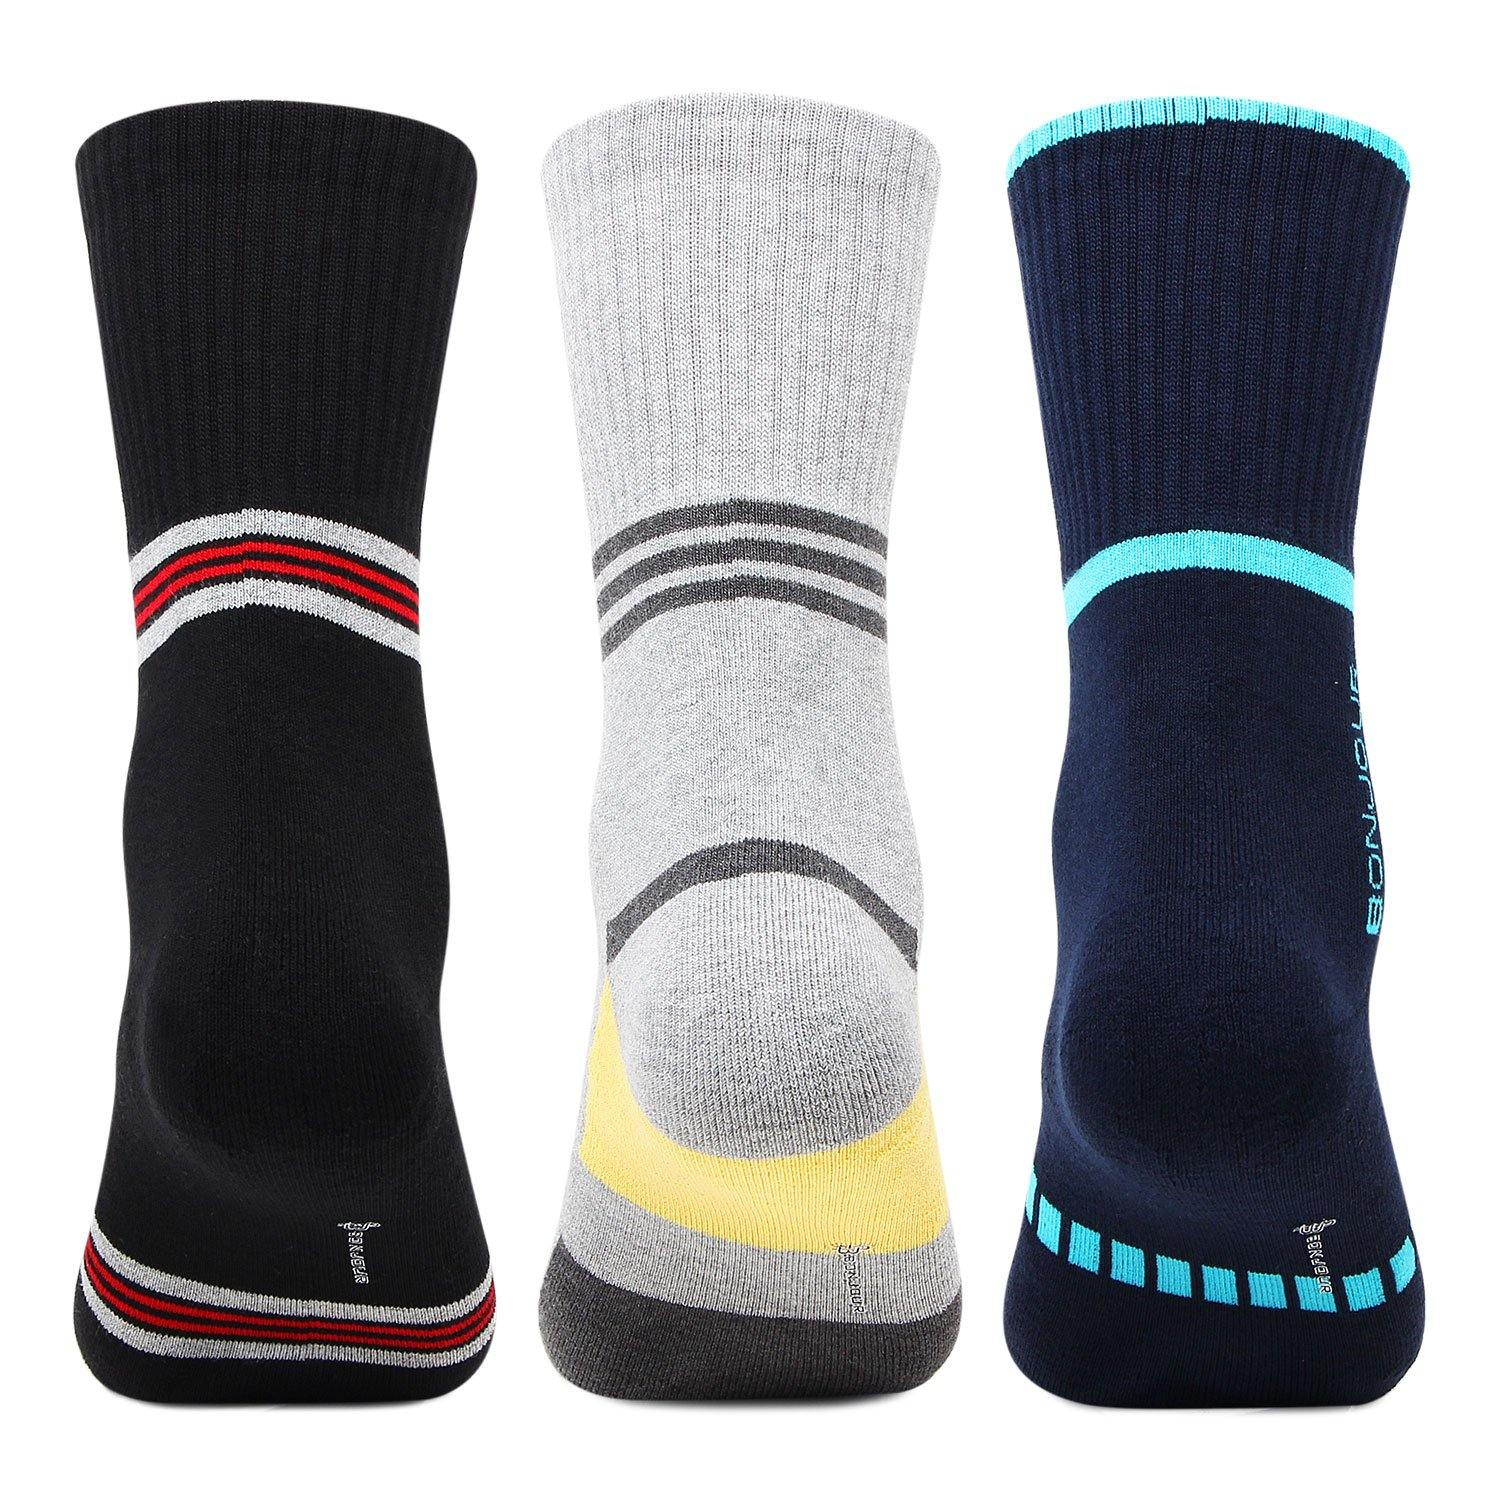 Men's Cushioned Crew  Sports Socks - Pack Of 3 - Bonjour Group